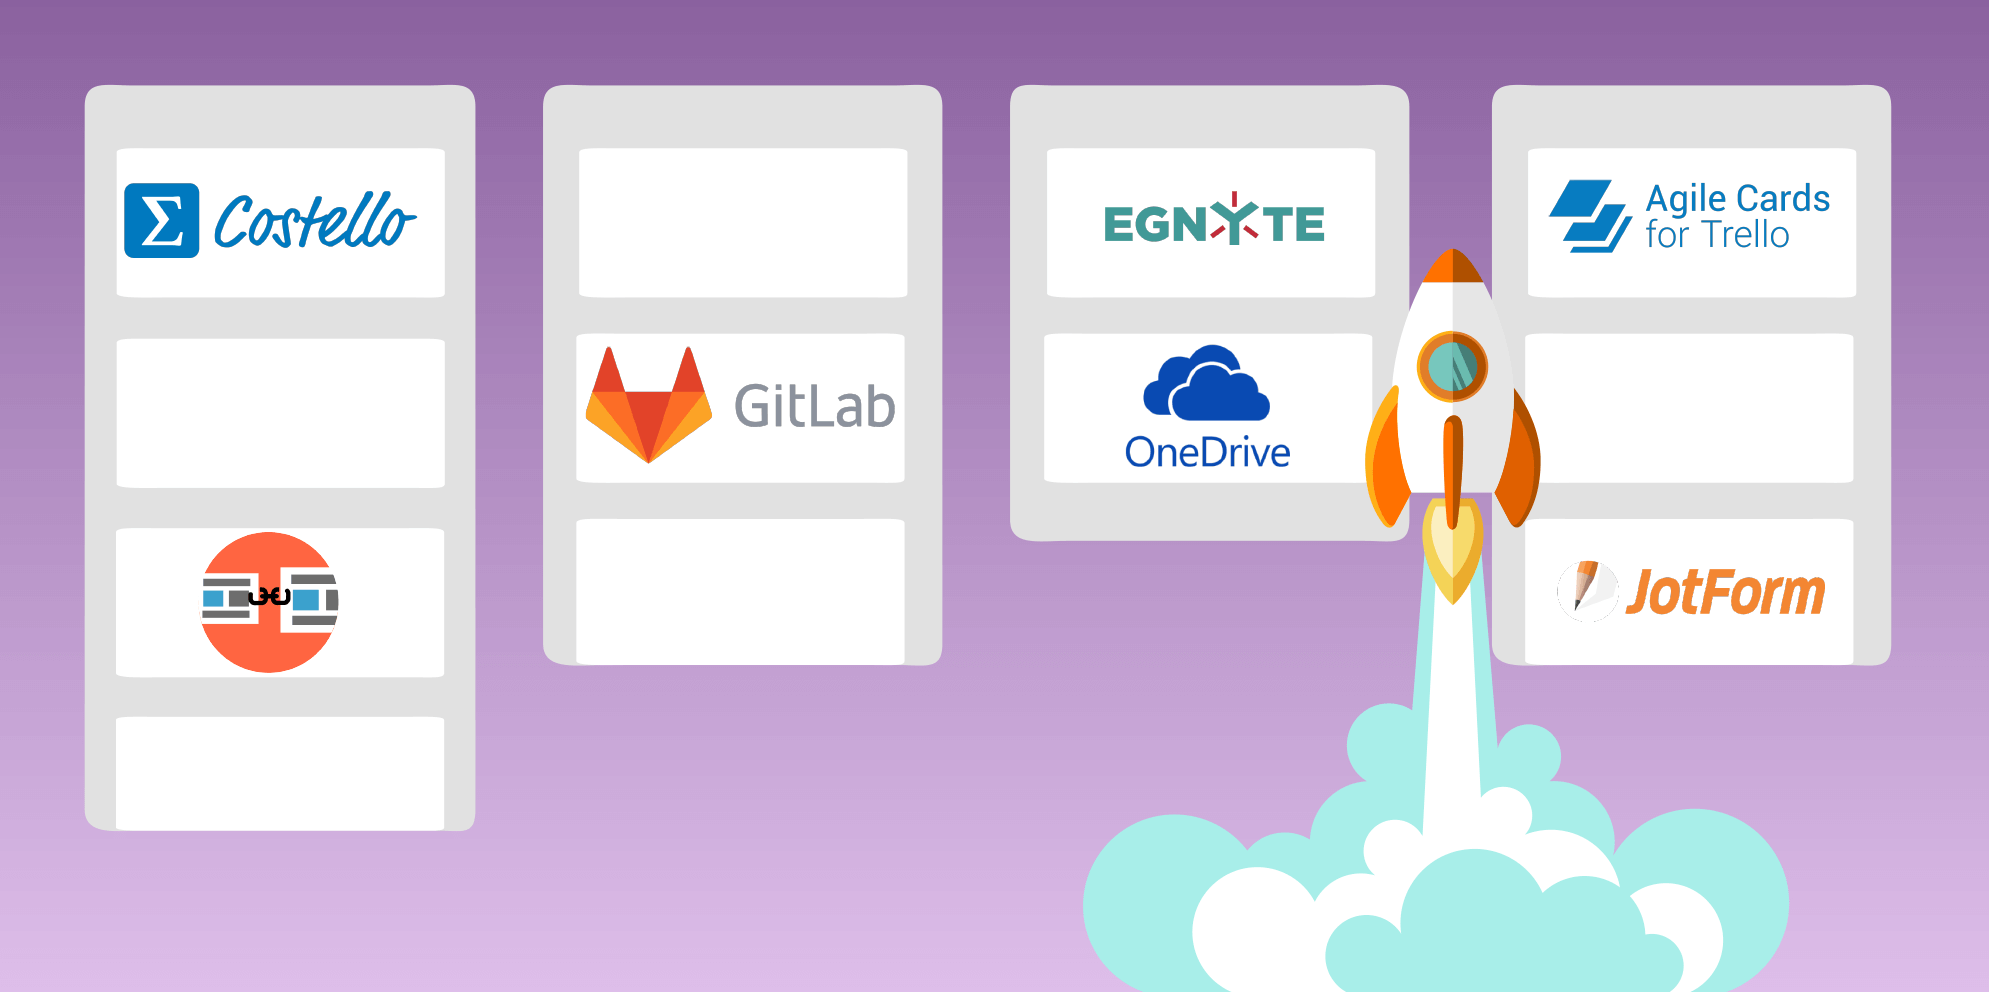 New Power-Ups! Integrations With GitLab, JotForm, OneDrive & More